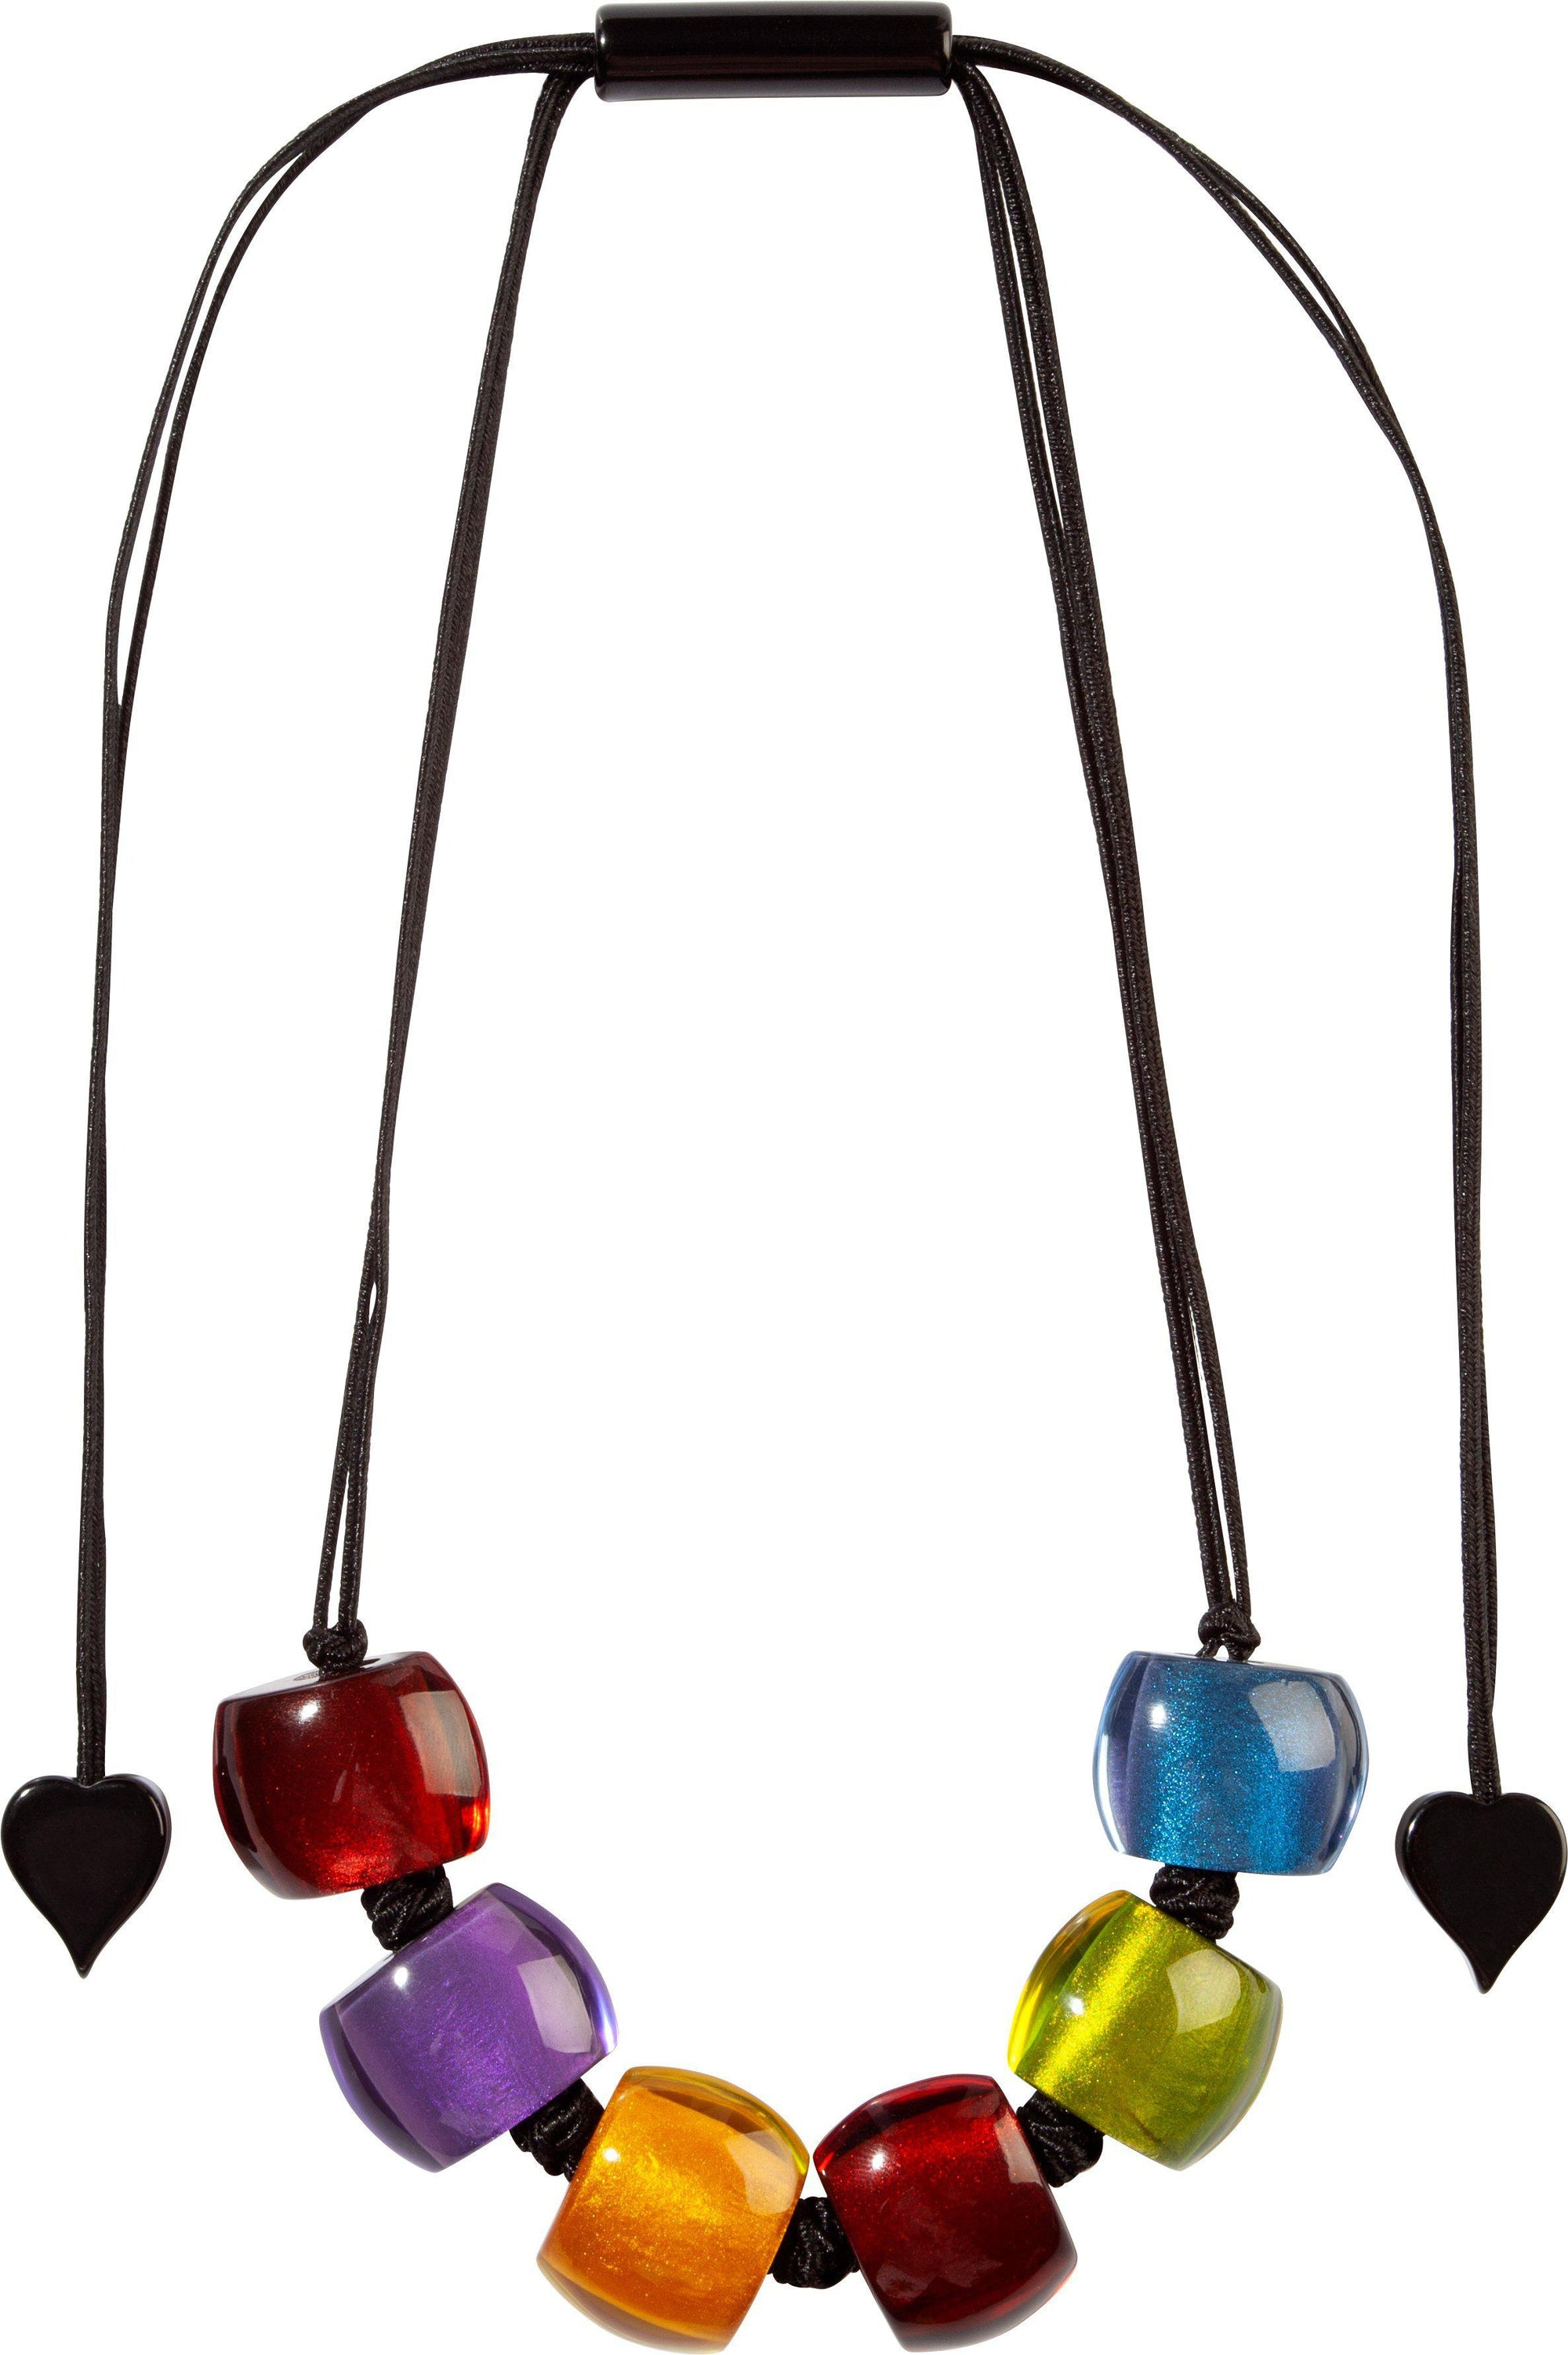 Zsiska Bellissima Multi-Coloured Beaded Adjustable Necklace-Jewellery-Zsiska-Small Bead-Temples and Markets